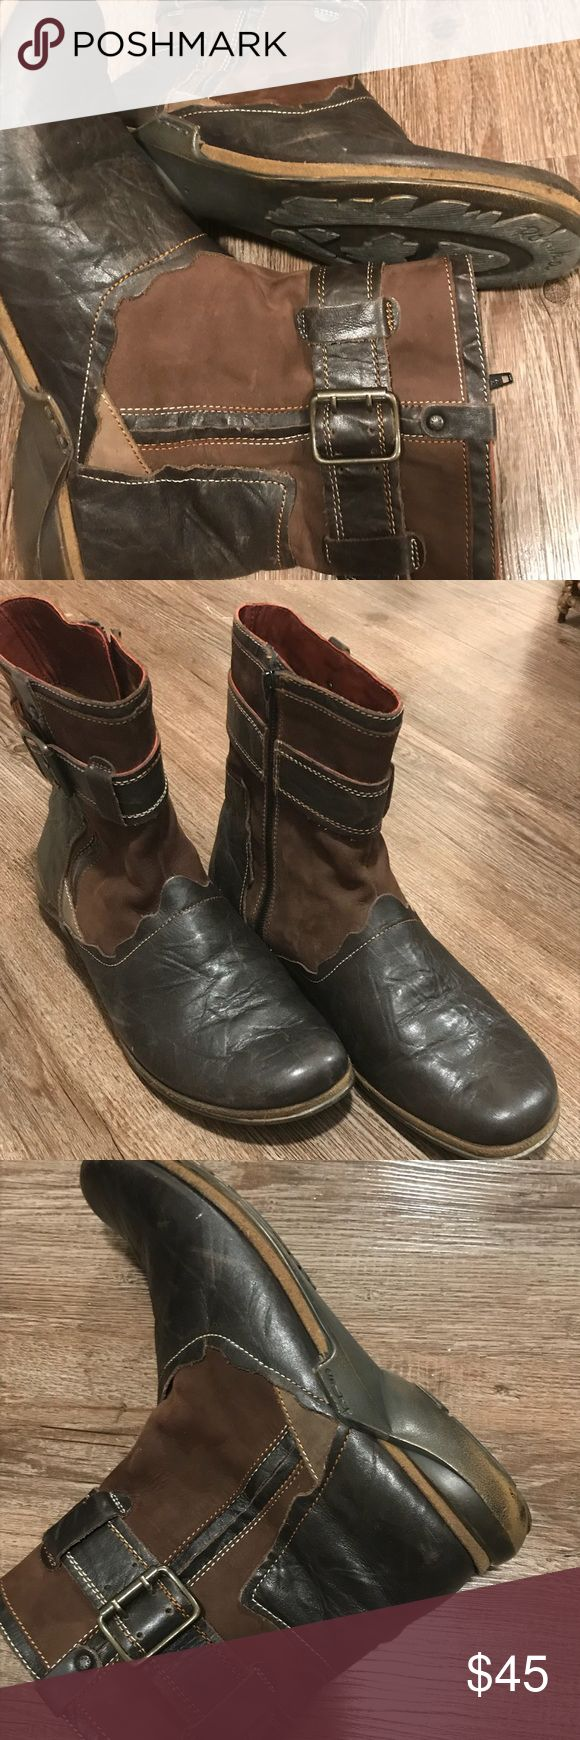 Brown Boots. 2 tone brown boots. Leather and suede. Side zip. Size 40. ( I usually wear 9 ) Very well made. Comfortable and stylish. I have worn them several times, the soles look a bit worn, but they are still very comfy. They honestly feel new. Romika Shoes Ankle Boots & Booties